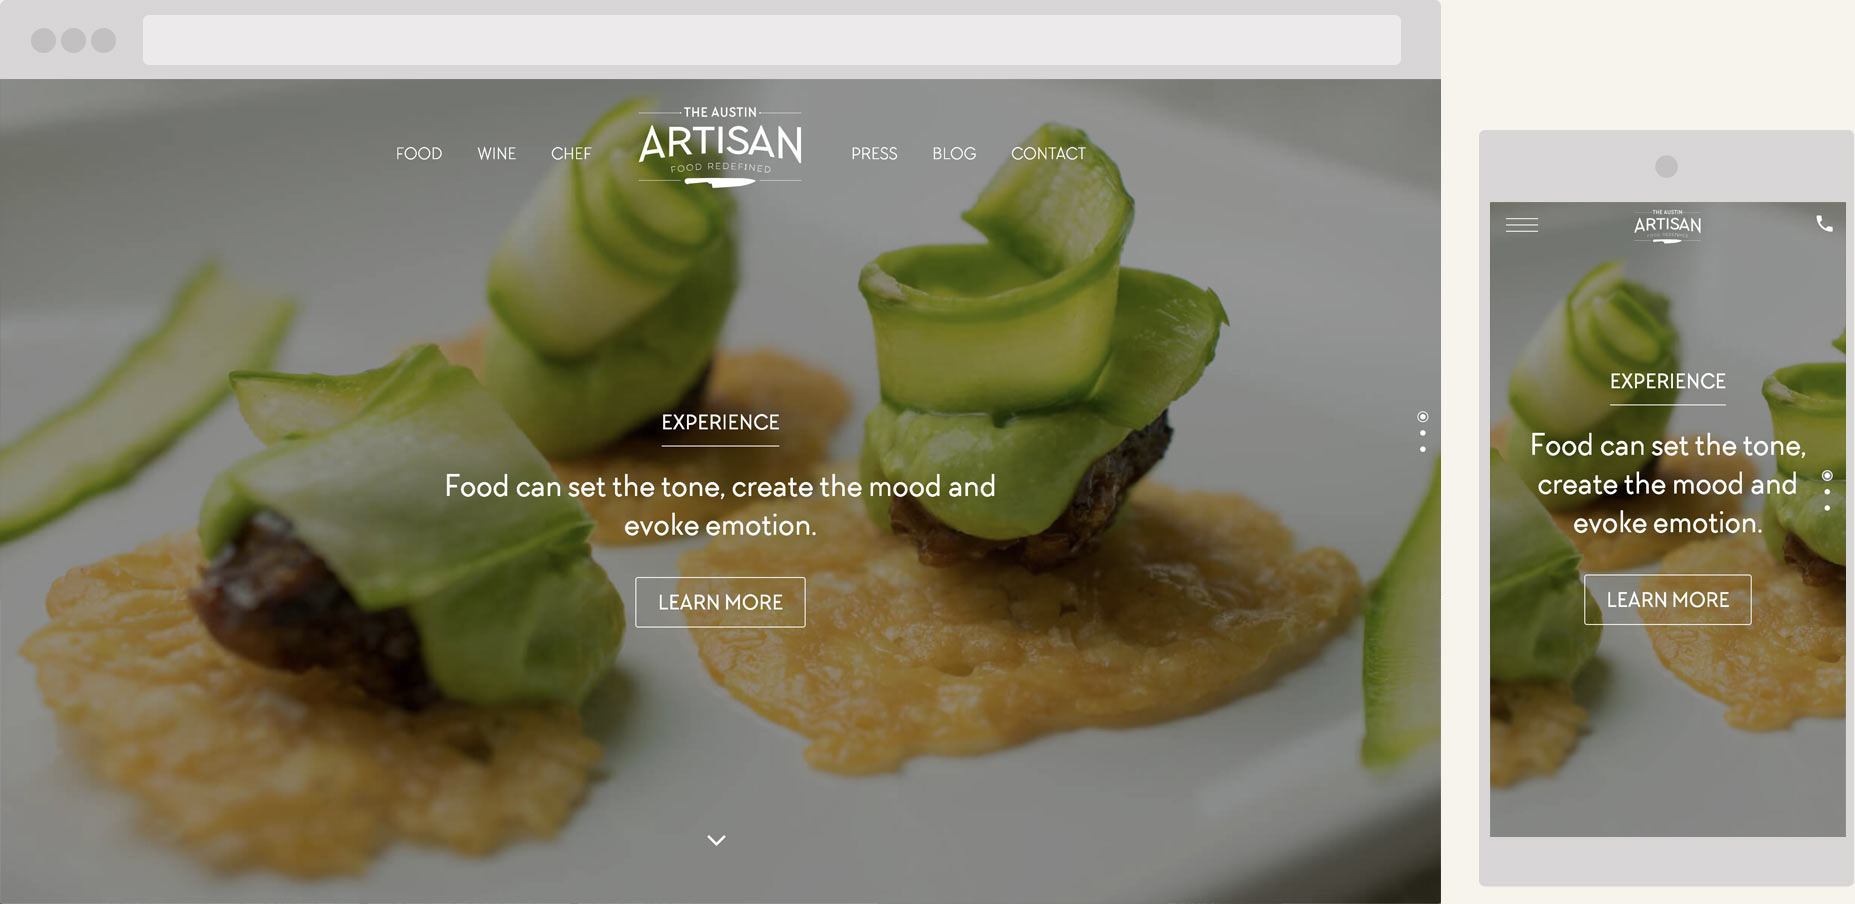 The Austin Artisan personal chef service